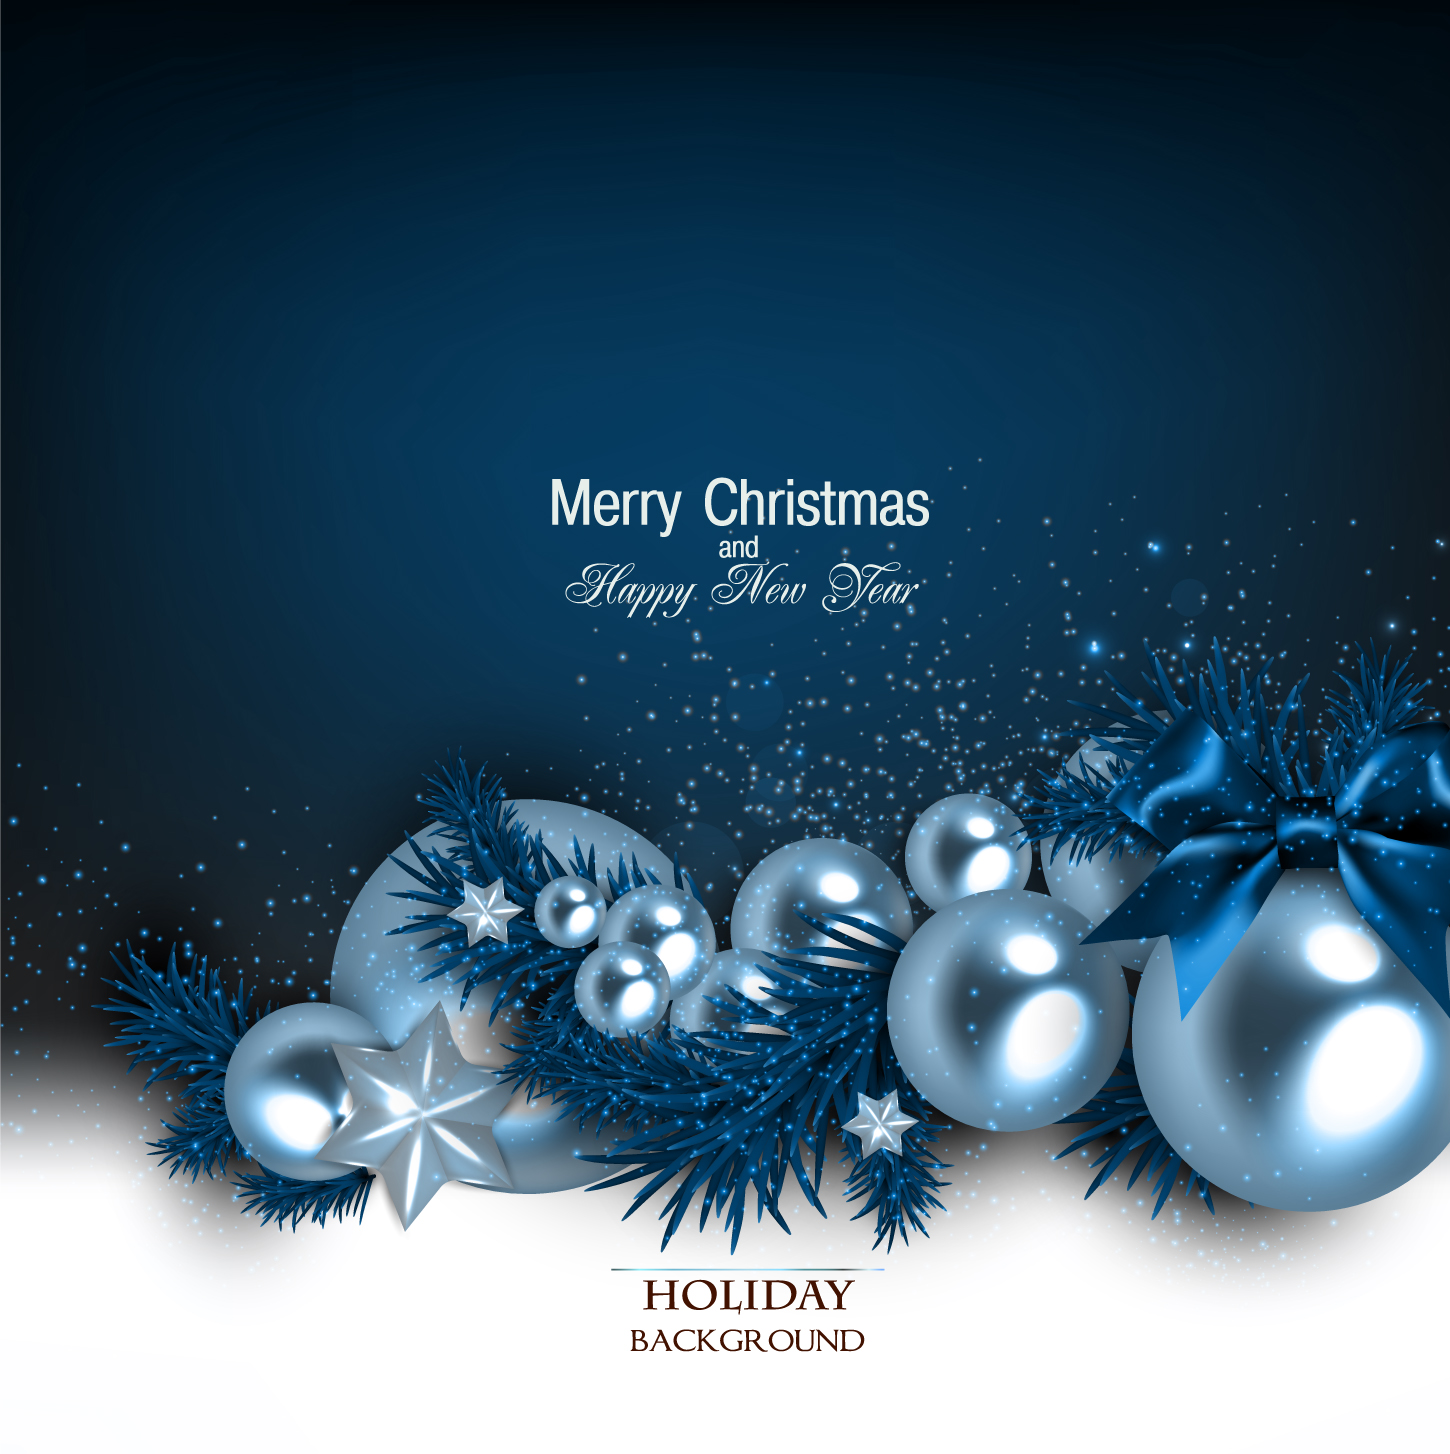 Shiny Christmas Holiday Background Vectors 02 Free Download